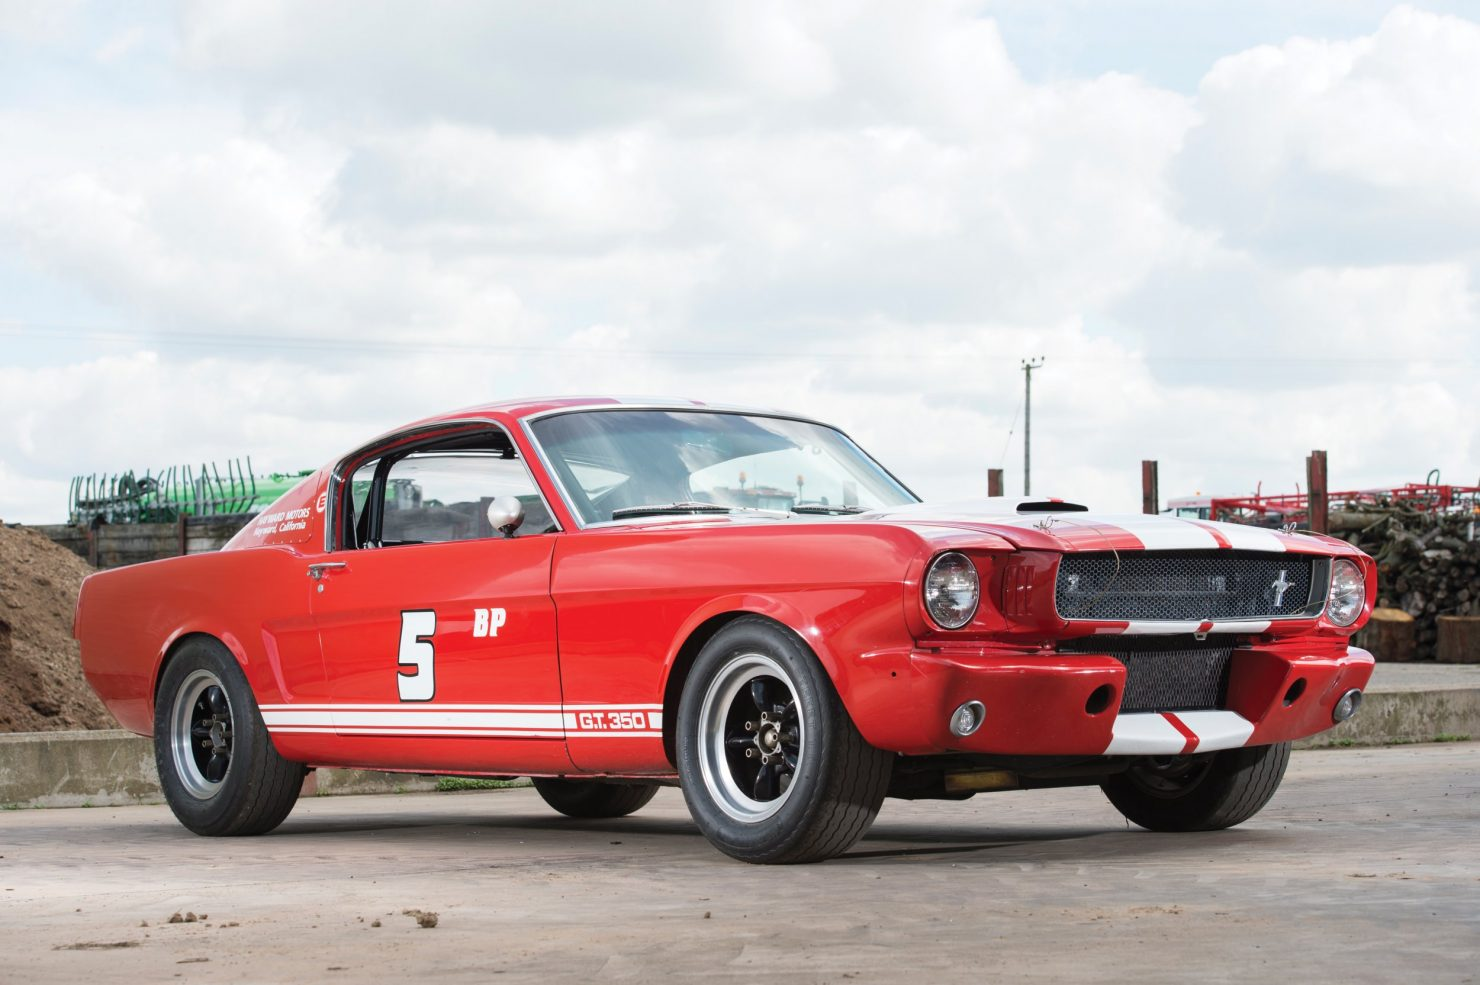 shelby gt350 race car 1 1480x985 - 1966 Shelby GT350 - Period SCCA Race Car